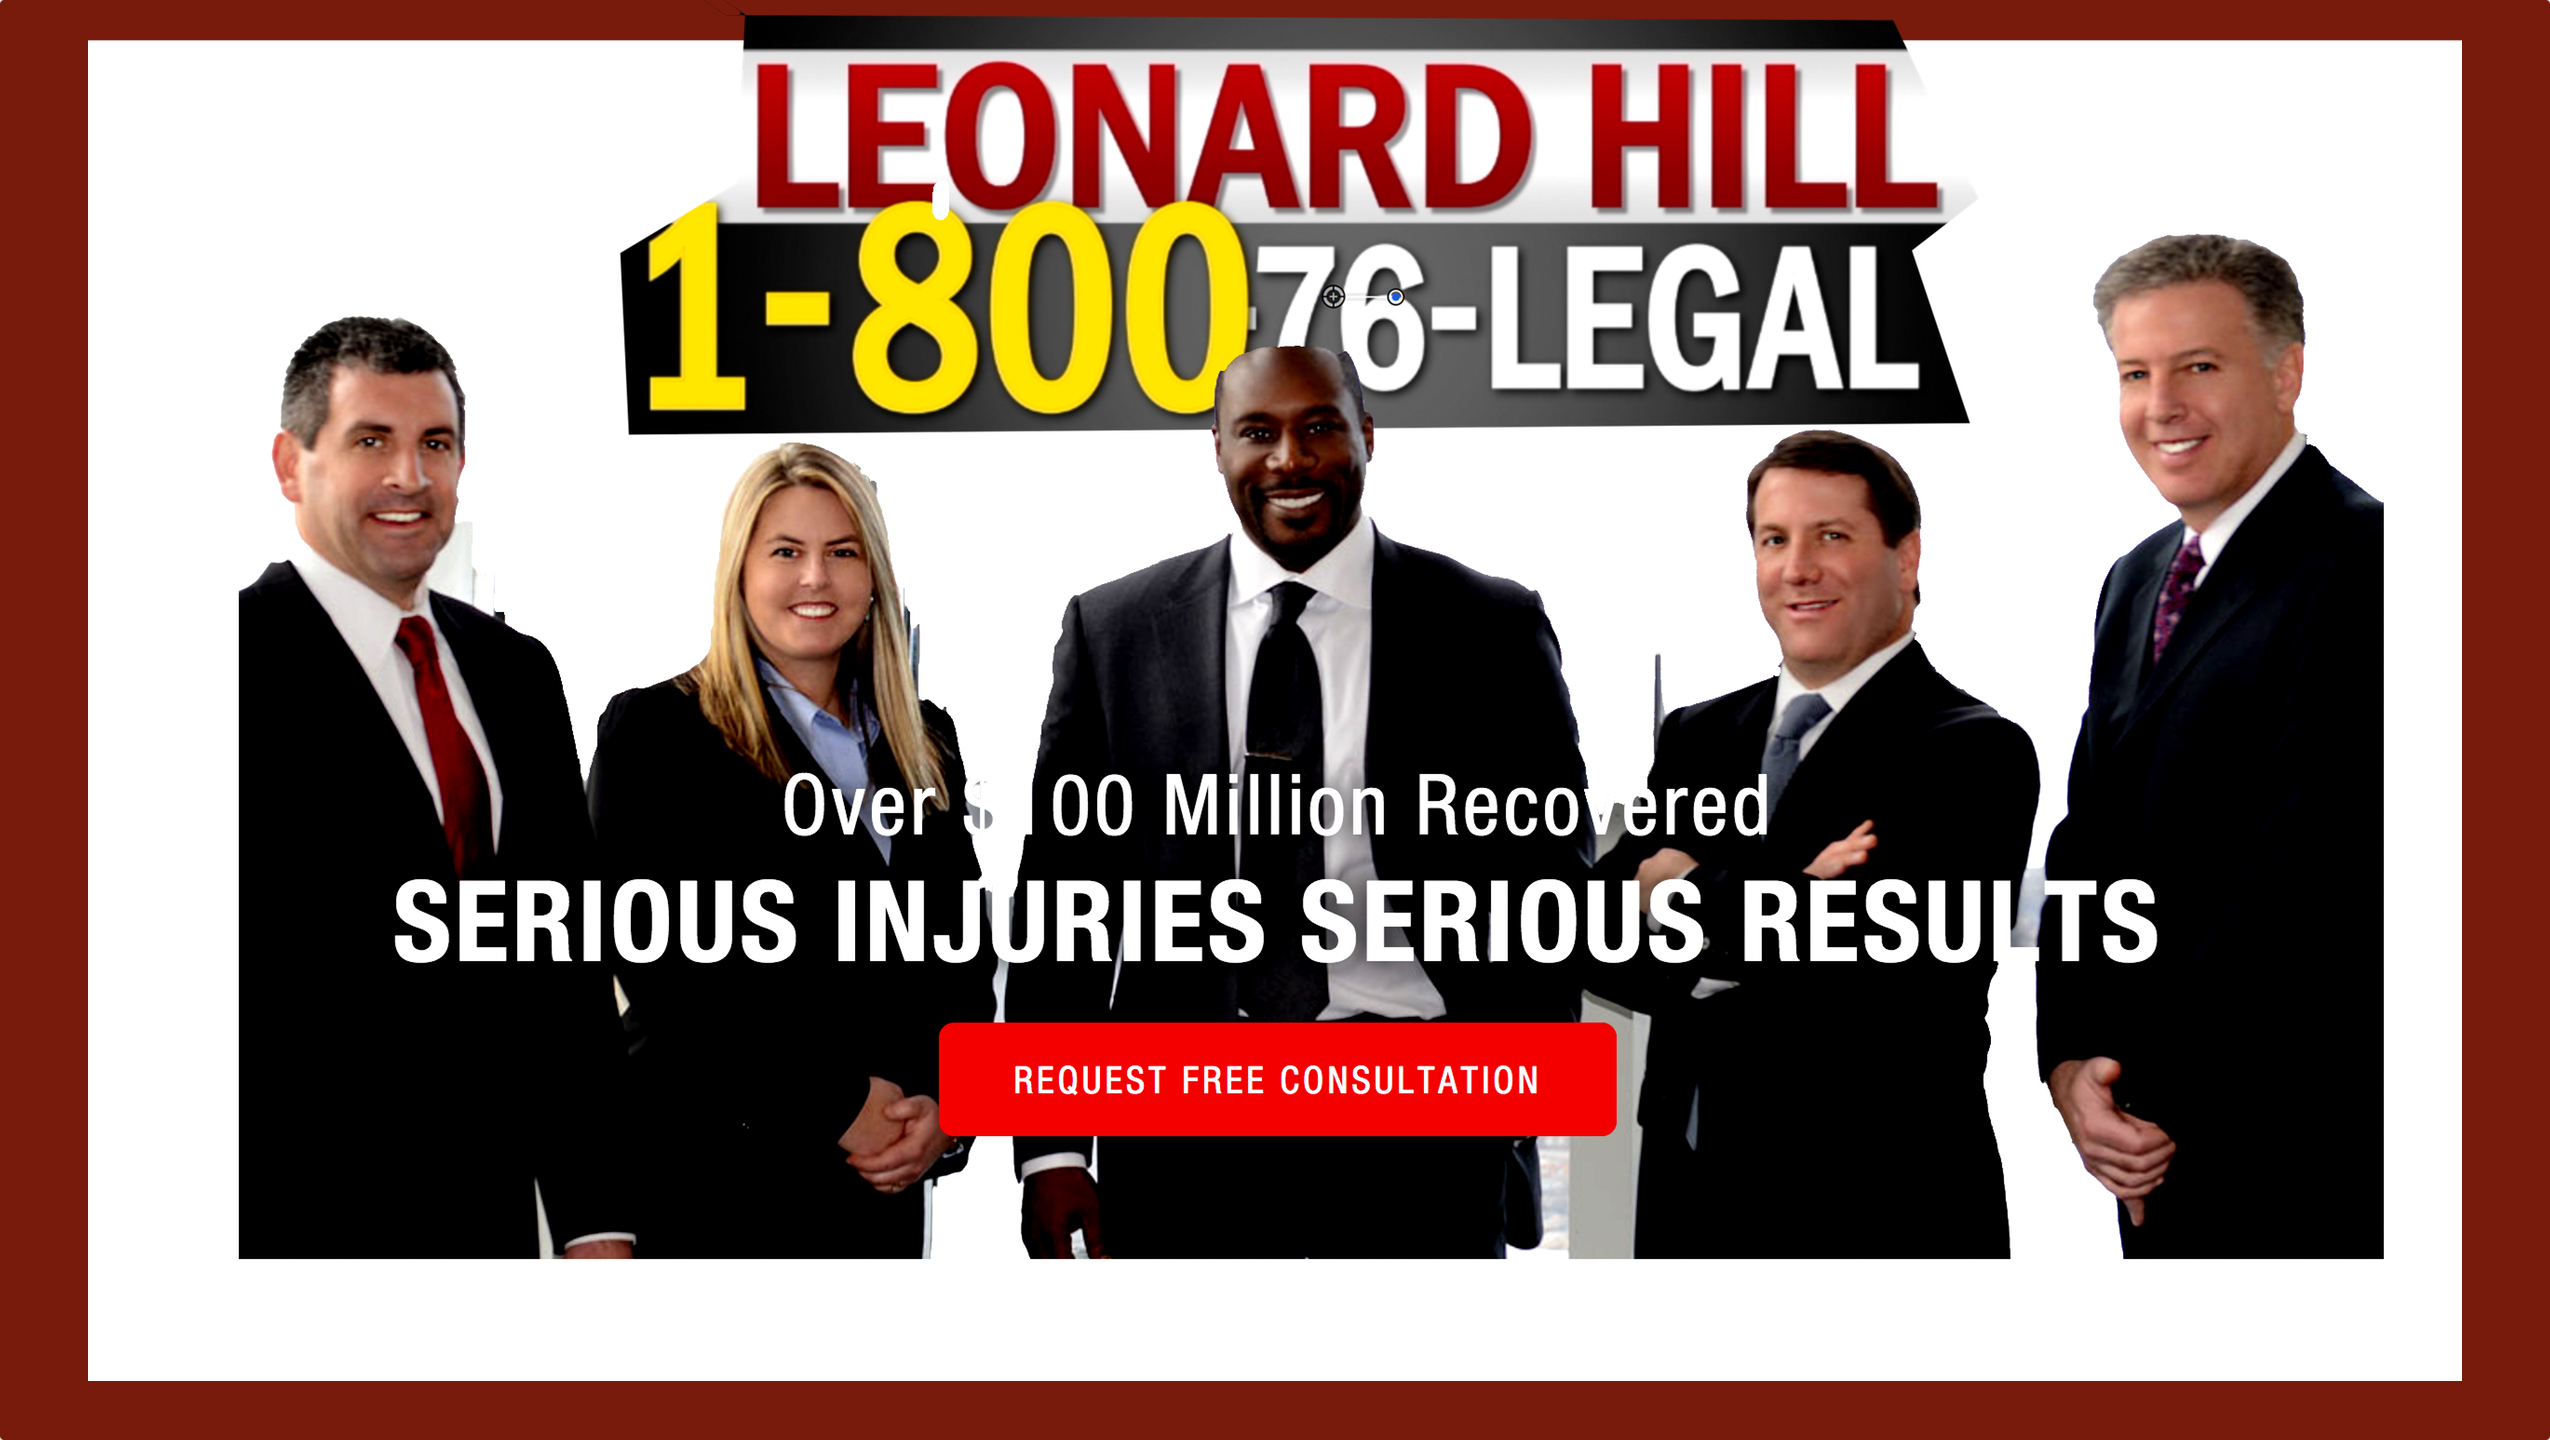 Best DUI Attorneys in Philadelphia PA,Best DUI Lawyers Philadelphia PA, best dui attorneys in Philadelphia, best dui lawyers in Philly, best dui lawyers in Philly PA